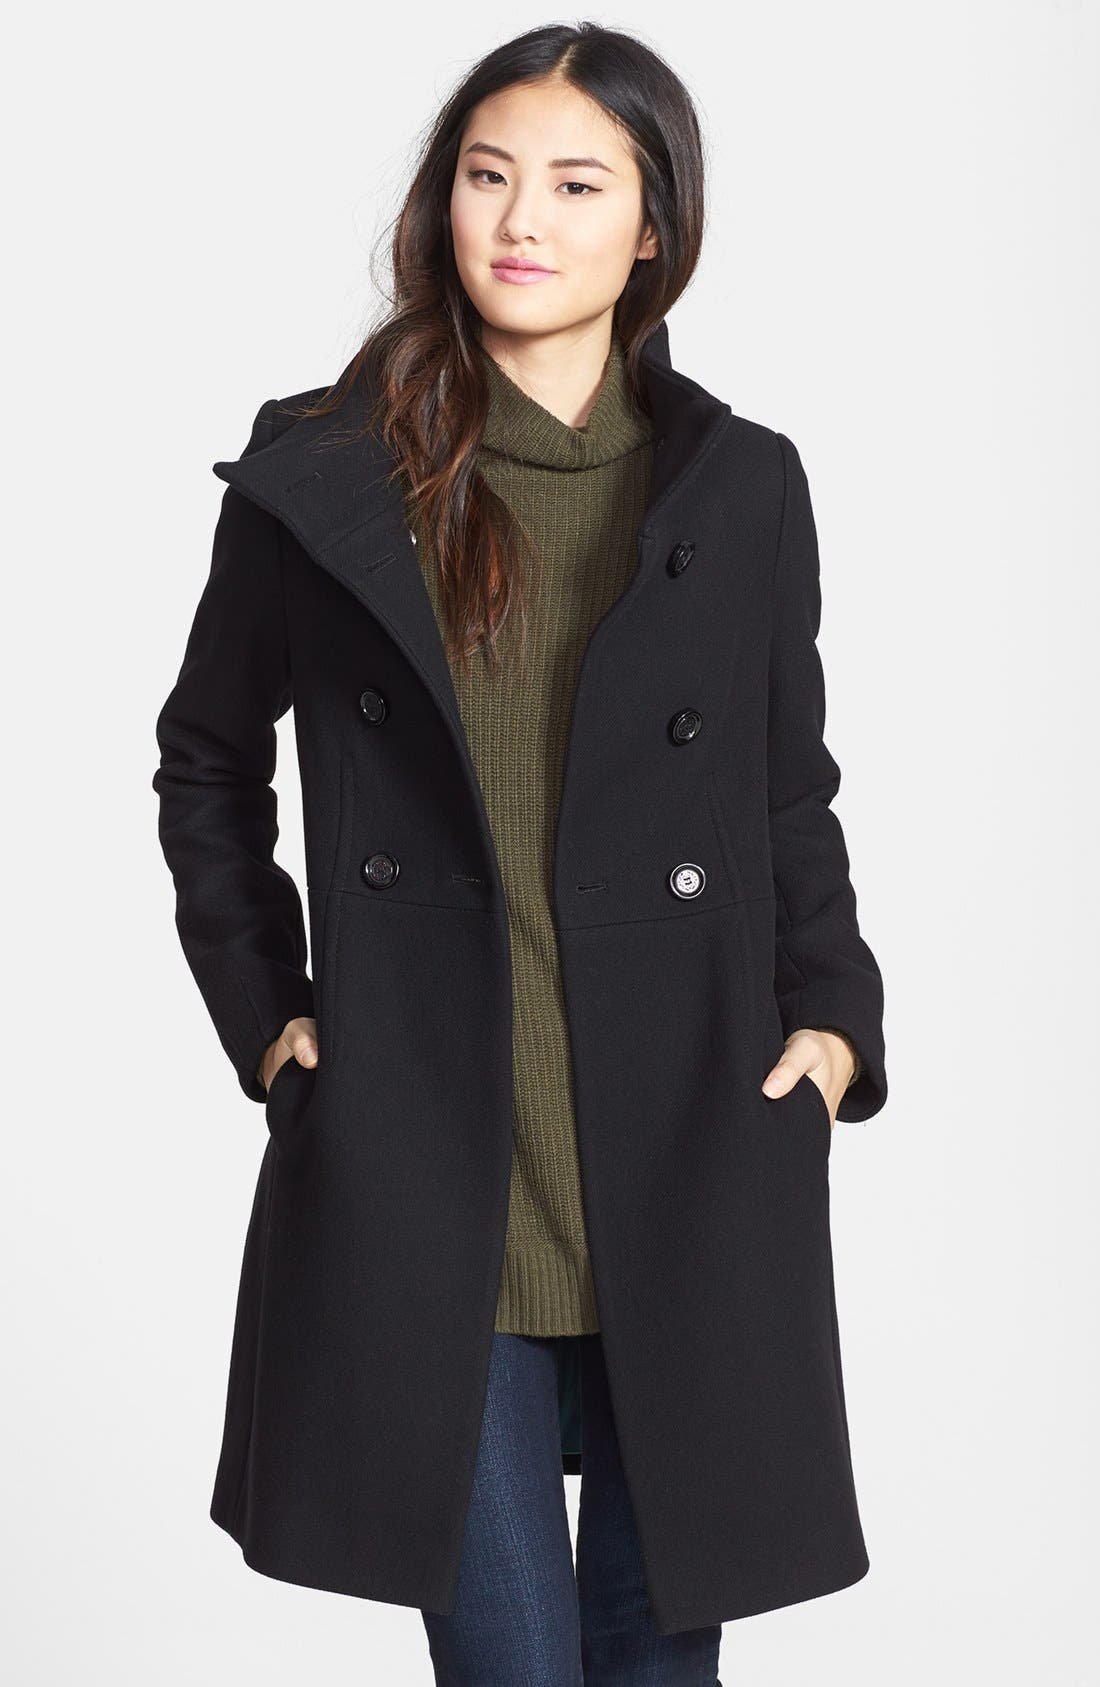 Main Image - Elie Tahari 'Pina' Stand Collar Double Breasted Long Wool Blend Coat